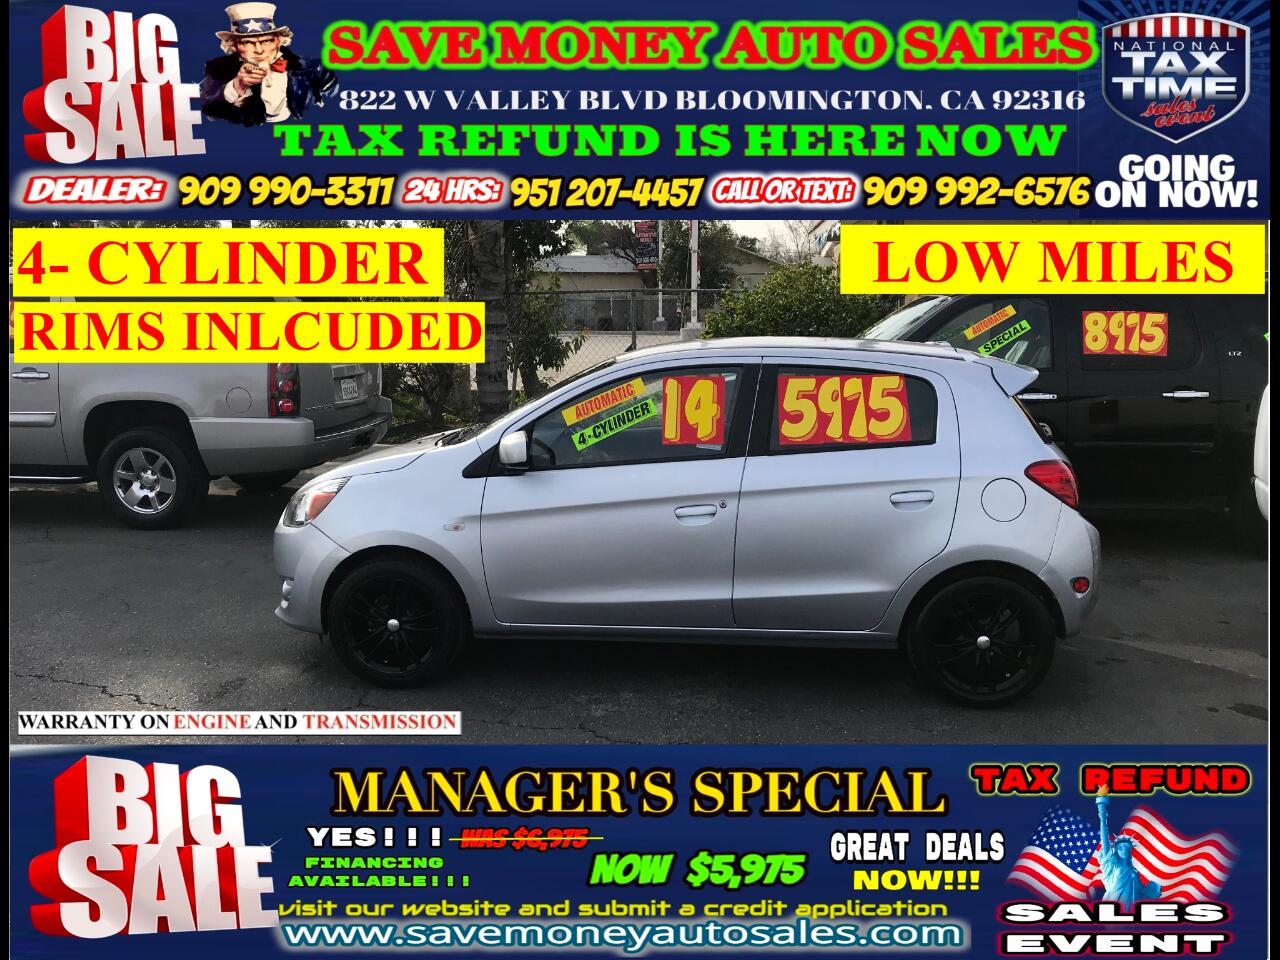 2014 Mitsubishi Mirage LOW MILES> EXTRA CLEAN> 4-CYLINDER> RIMS INCLUDED